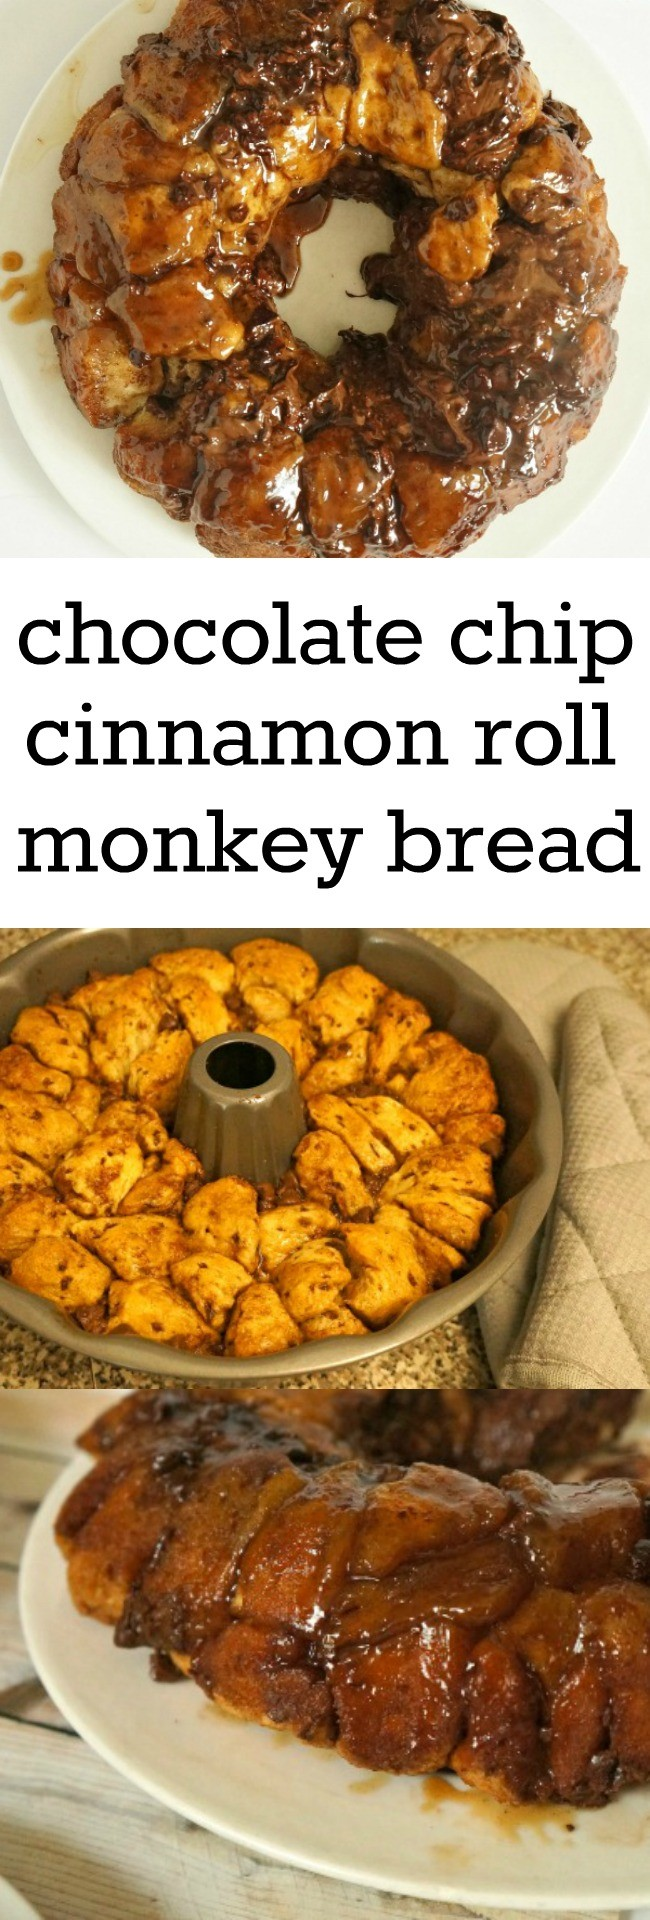 Chocolate chip cinnamon roll monkey bread recipe. I am totally making this, sounds like it's an easy dessert to make!